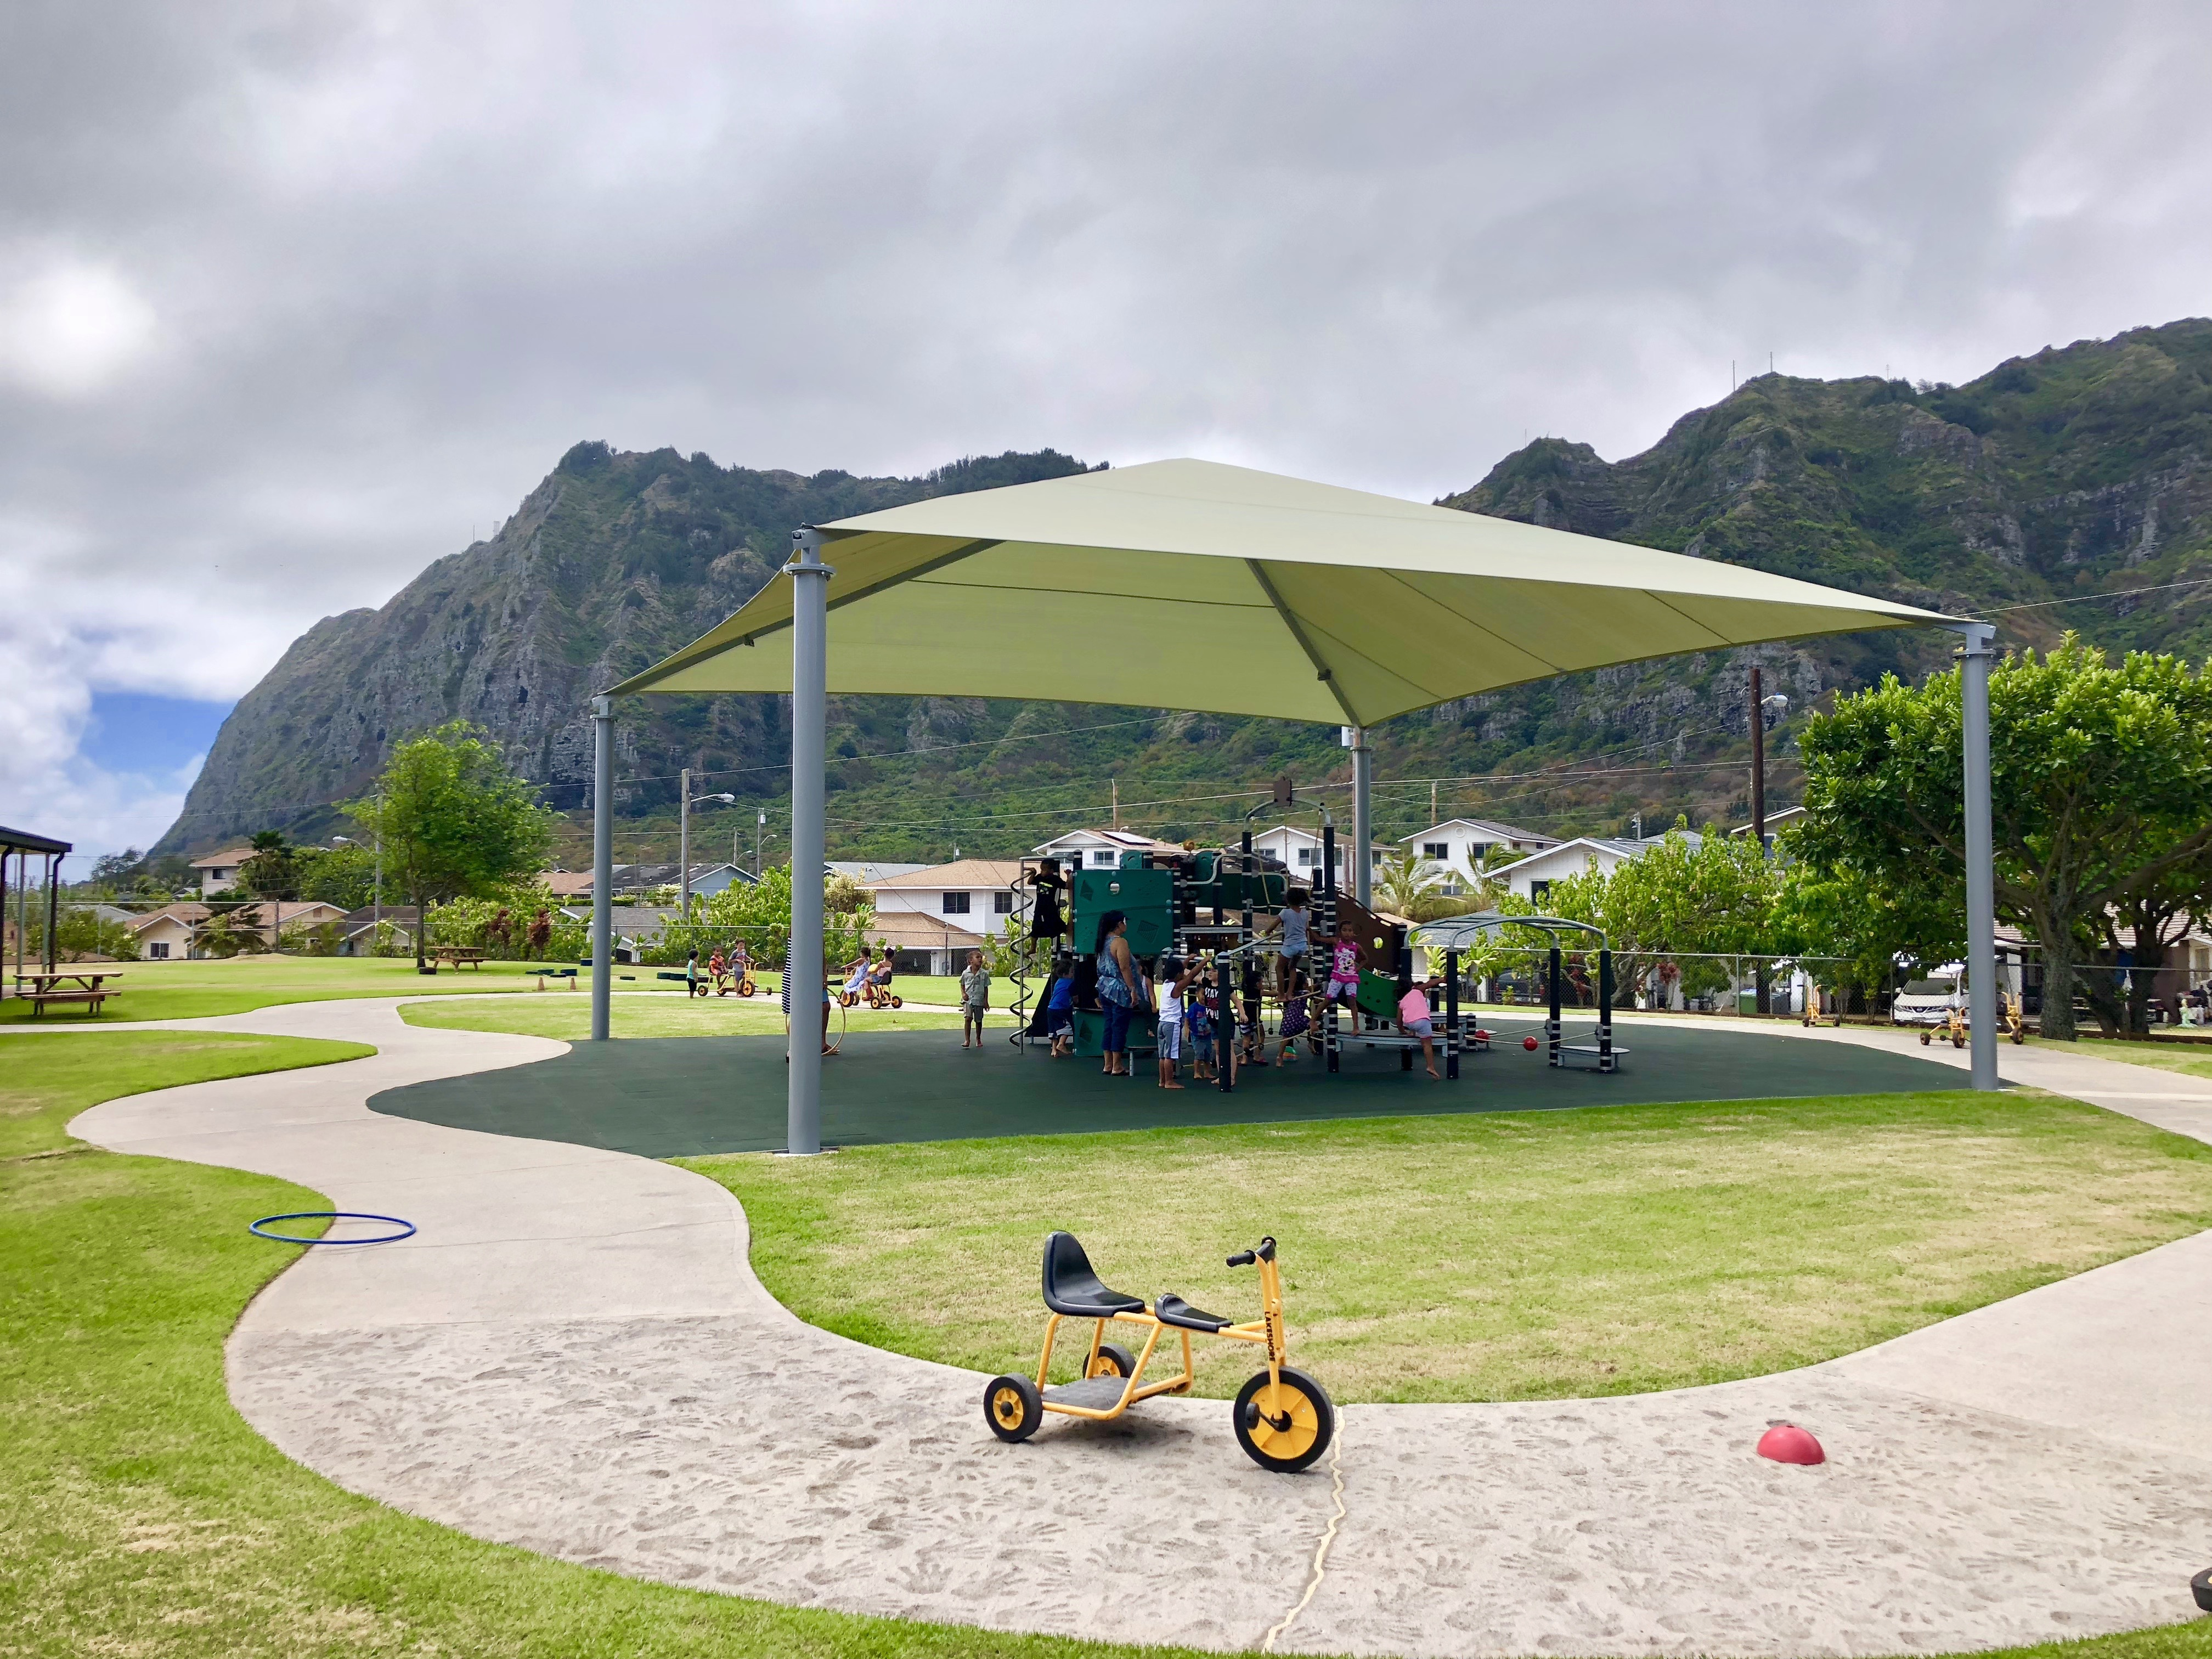 shades, awnings parks and playgrounds